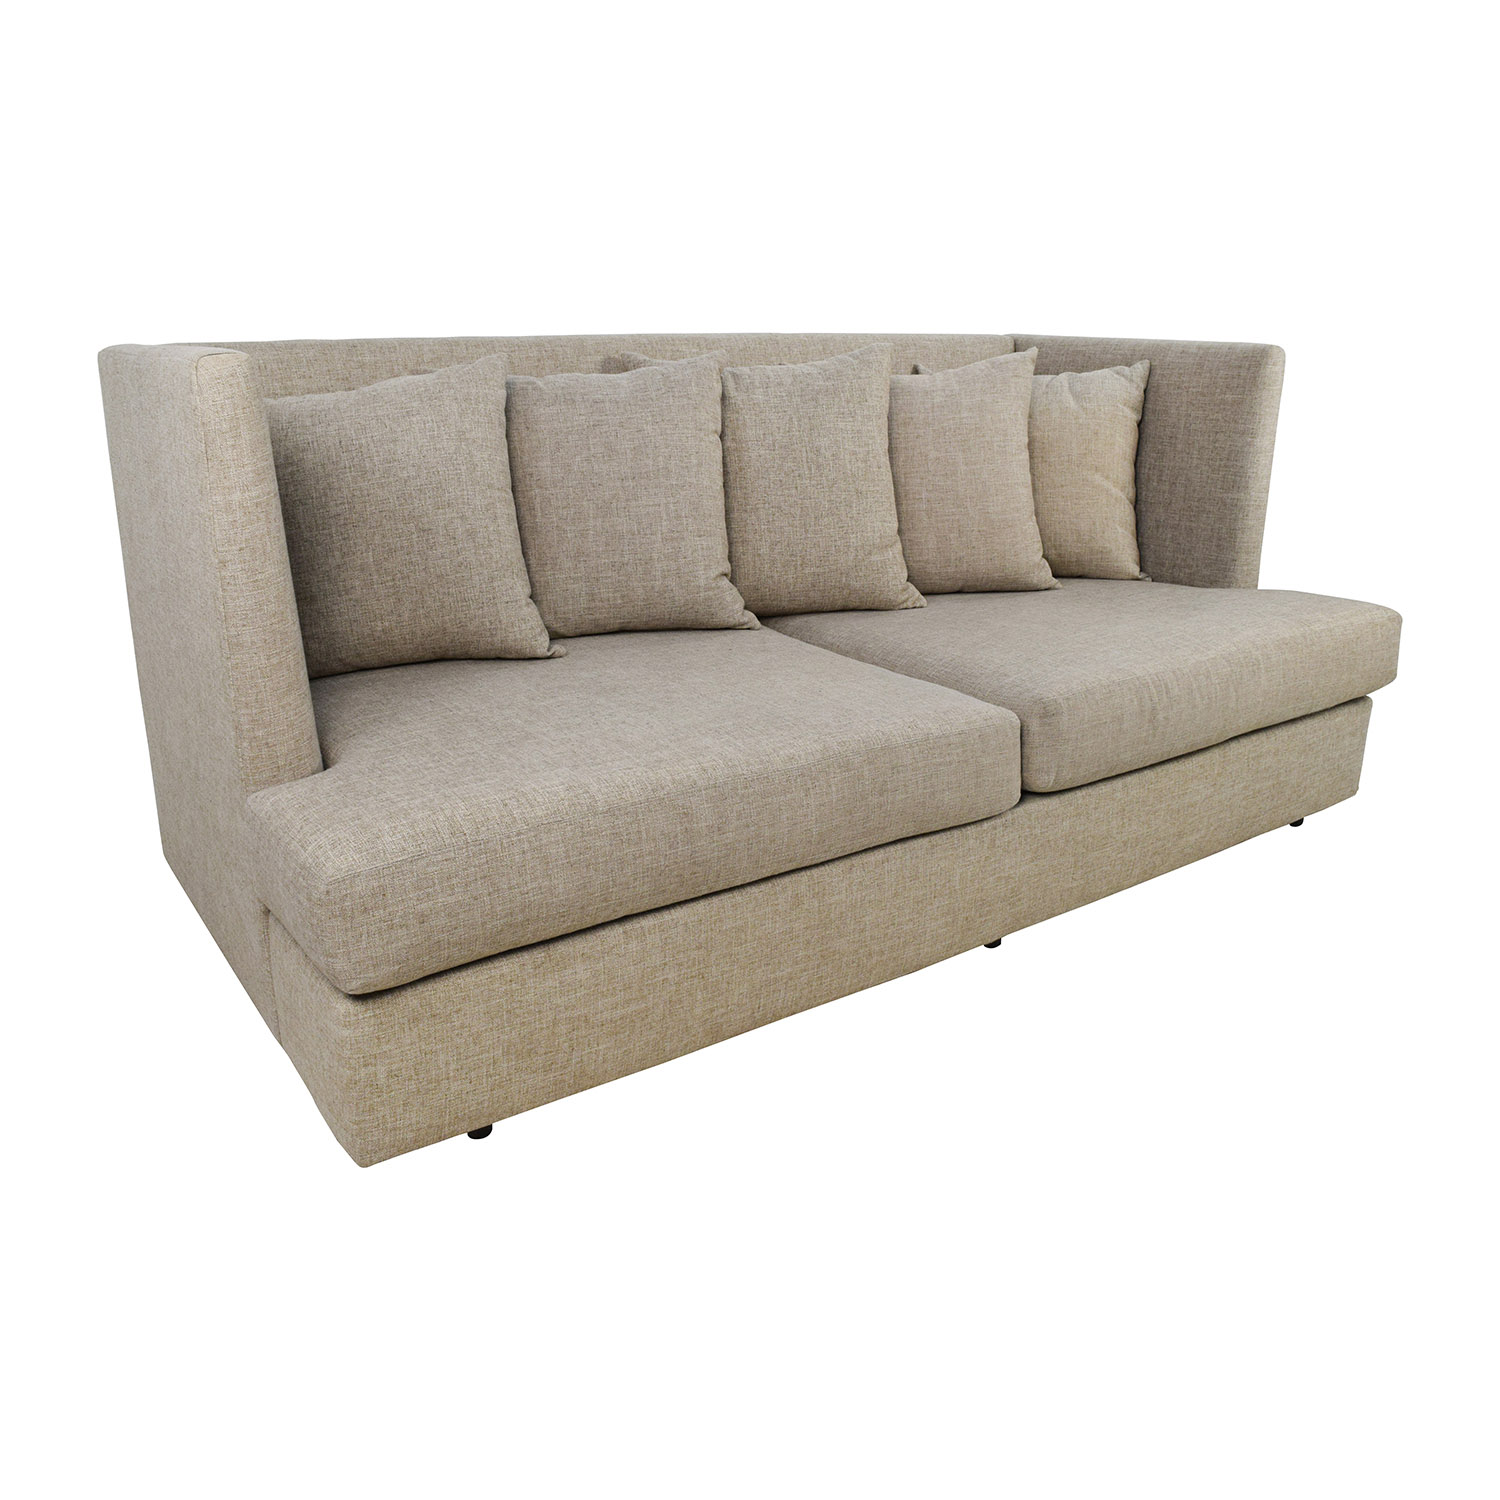 34 Off Crate Barrel Crate Barrel Shelter Beige Couch Sofas